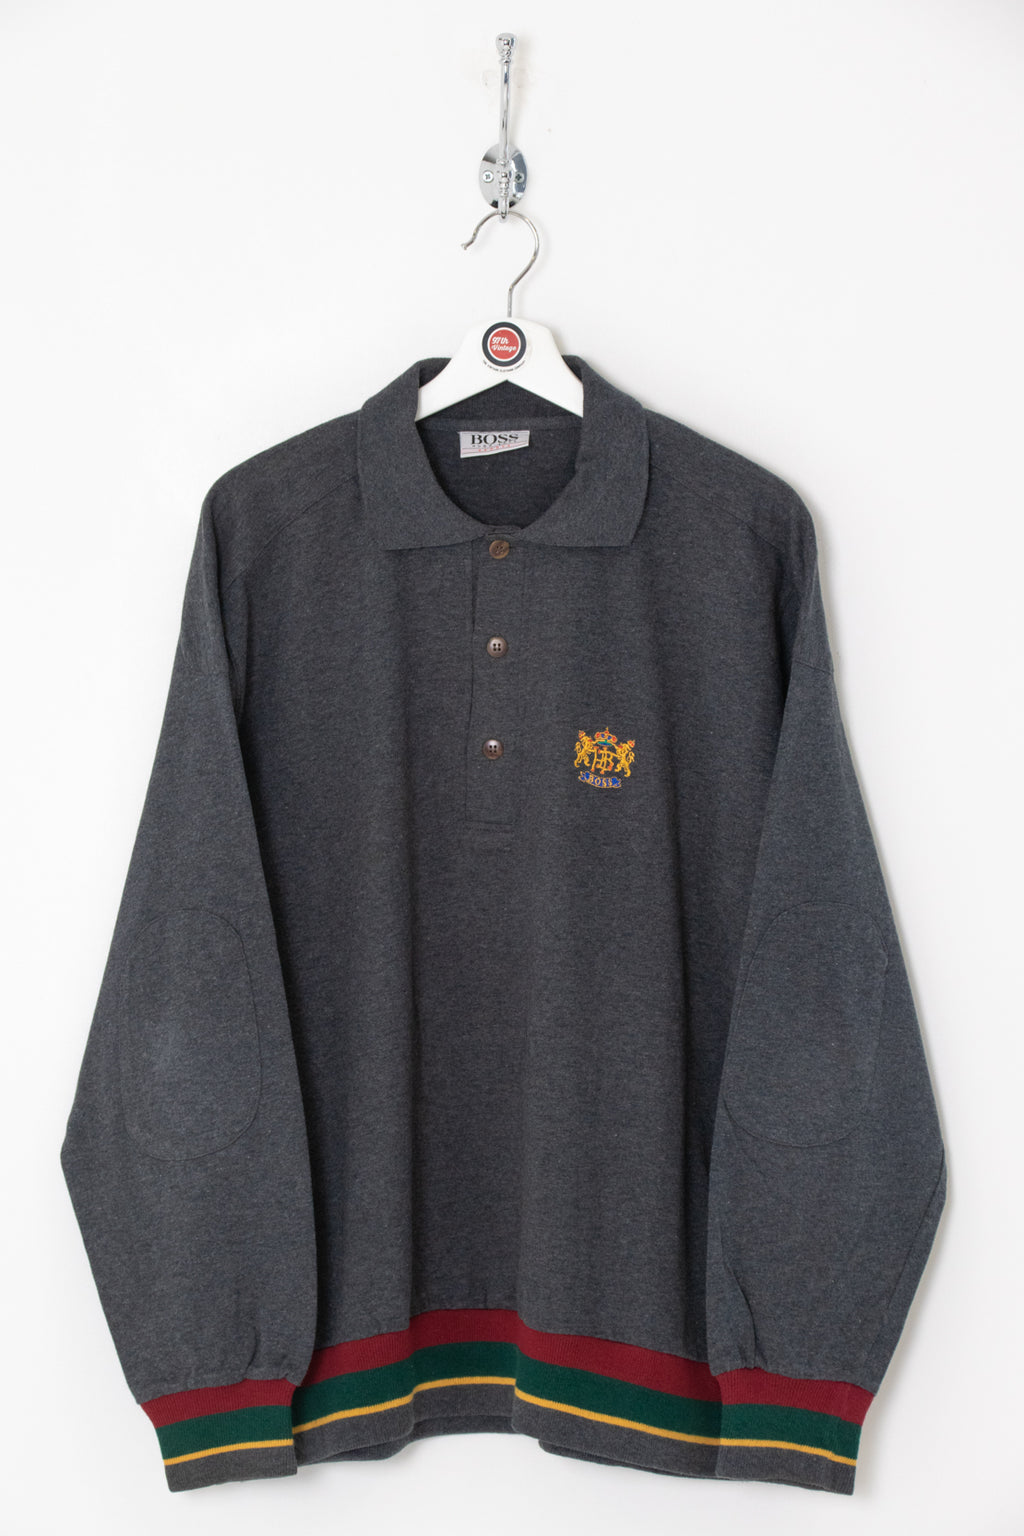 Hugo Boss Polo Sweatshirt (XL)